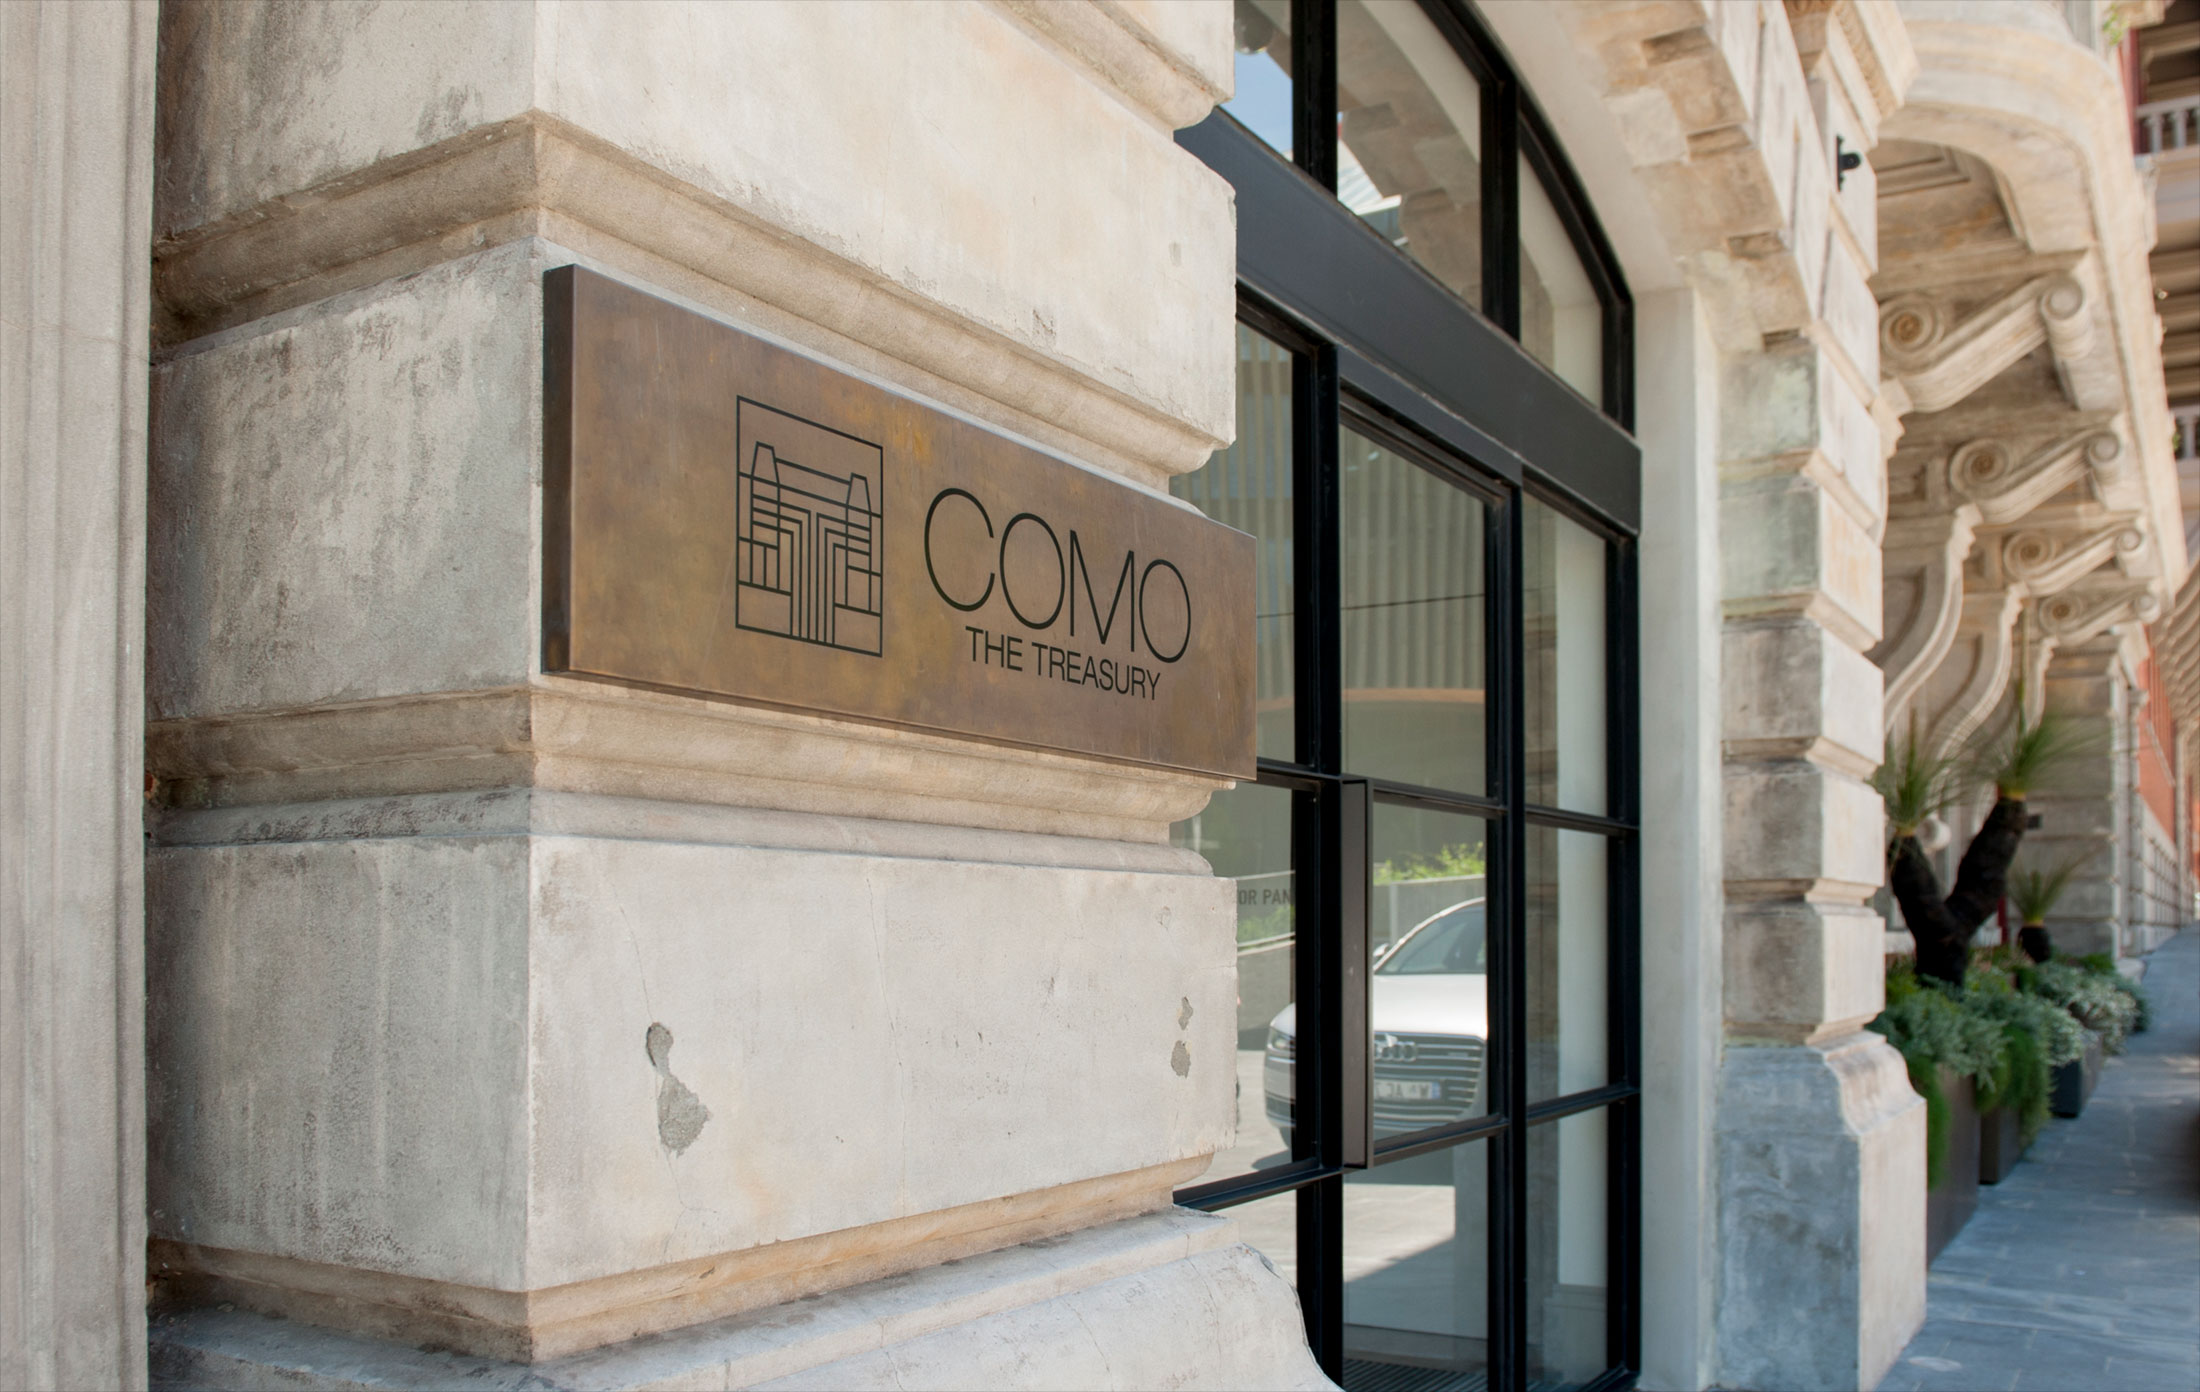 COMO The Treasury – Signage